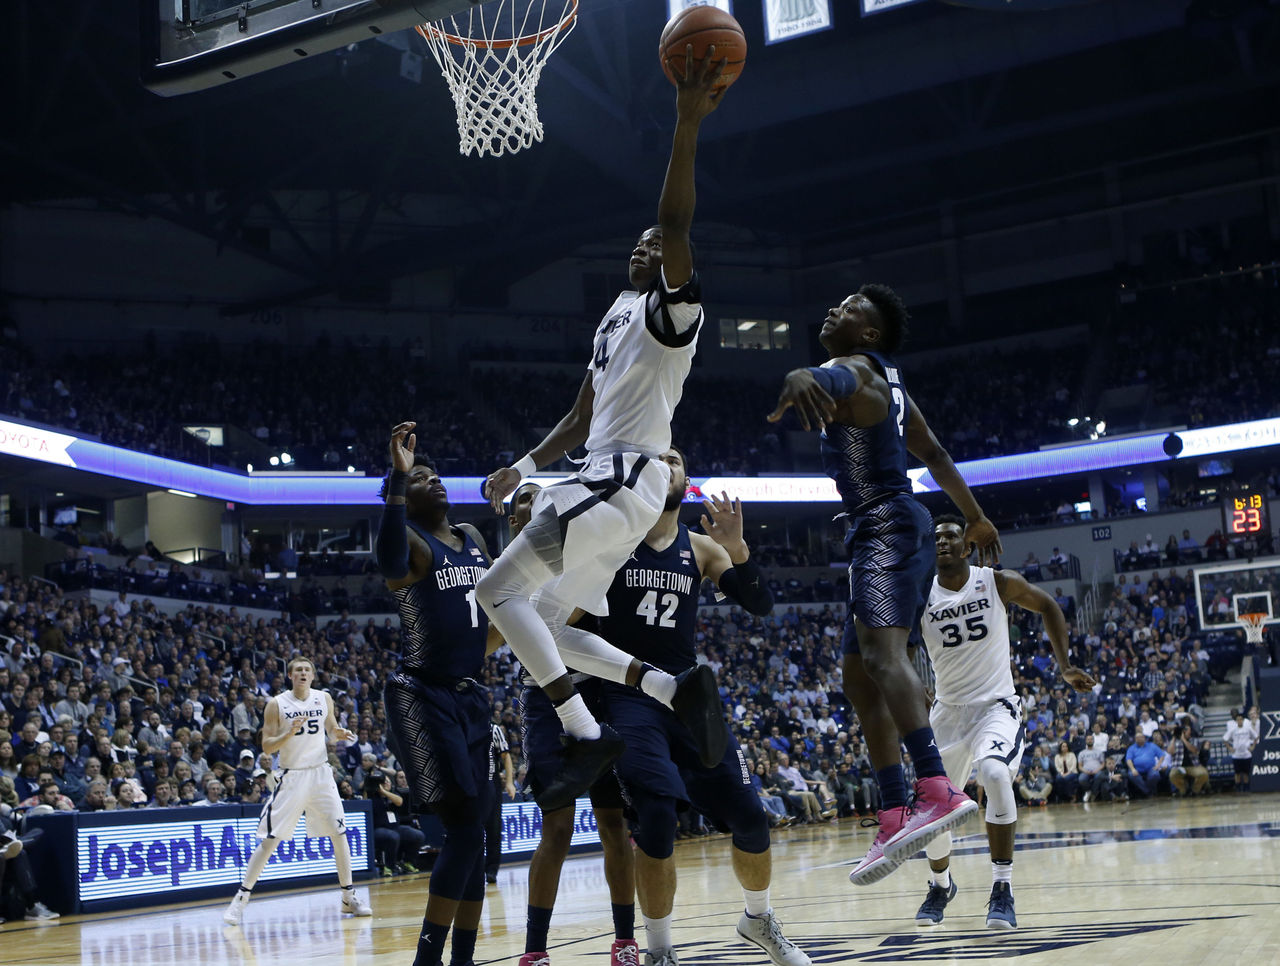 Cropped_2017-01-22t201553z_580387859_nocid_rtrmadp_3_ncaa-basketball-georgetown-at-xavier